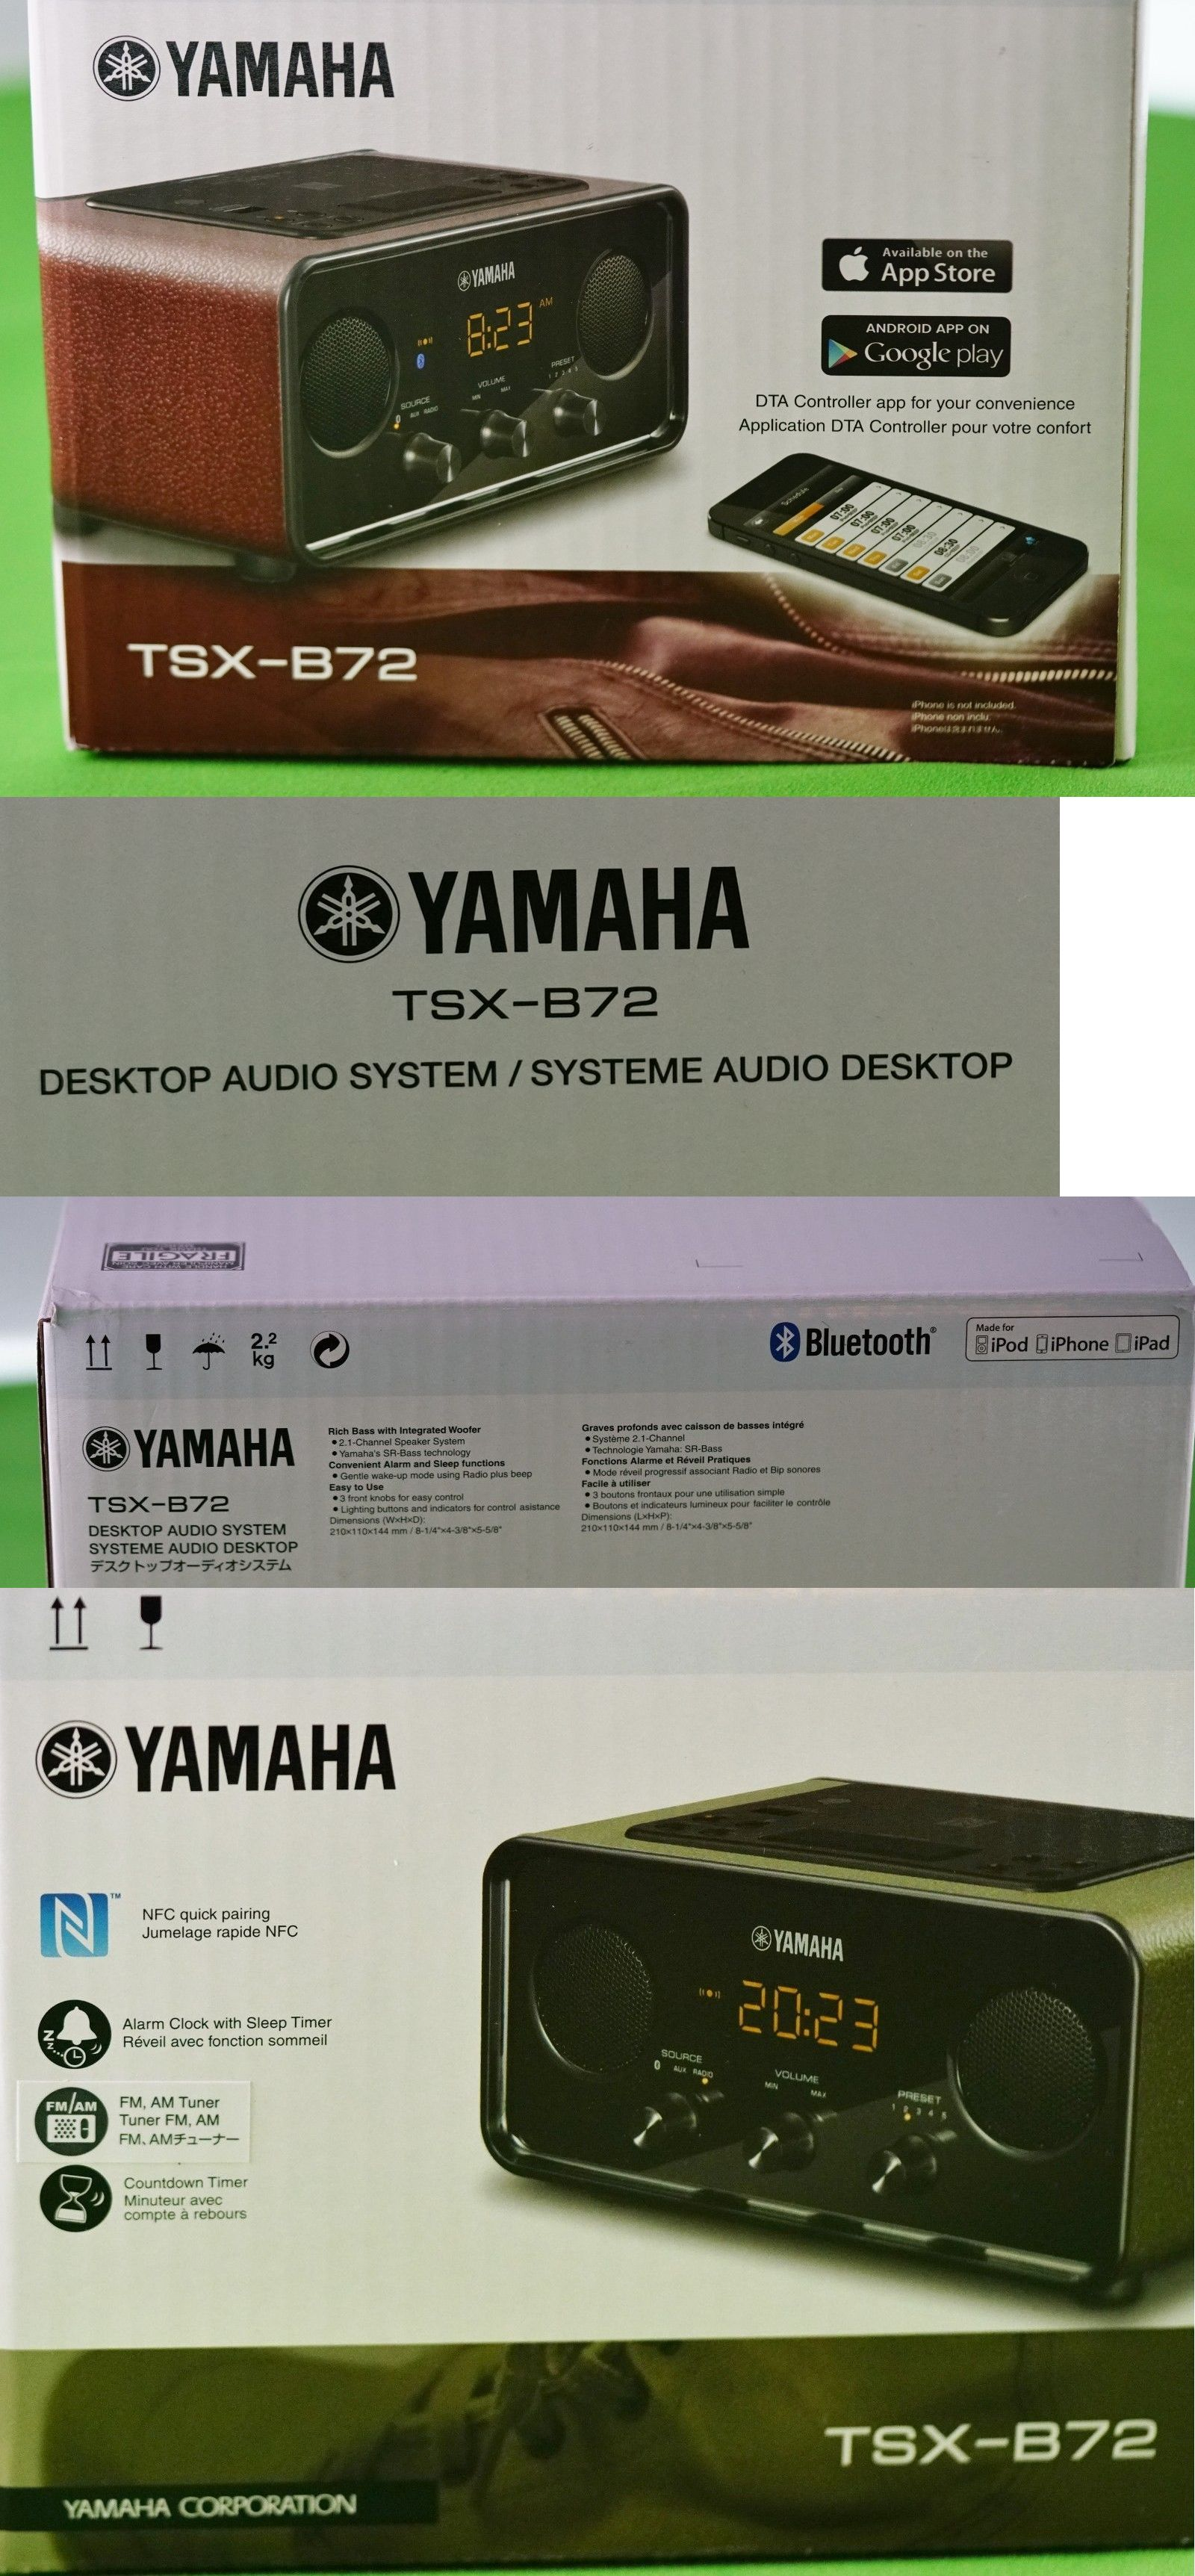 Alarm Clocks 79643: Yamaha Tsx-B72 Desktop Audio System Bluetooth Nfc Alarm Clock Radio Usb Charger -> BUY IT NOW ONLY: $141.41 on eBay!